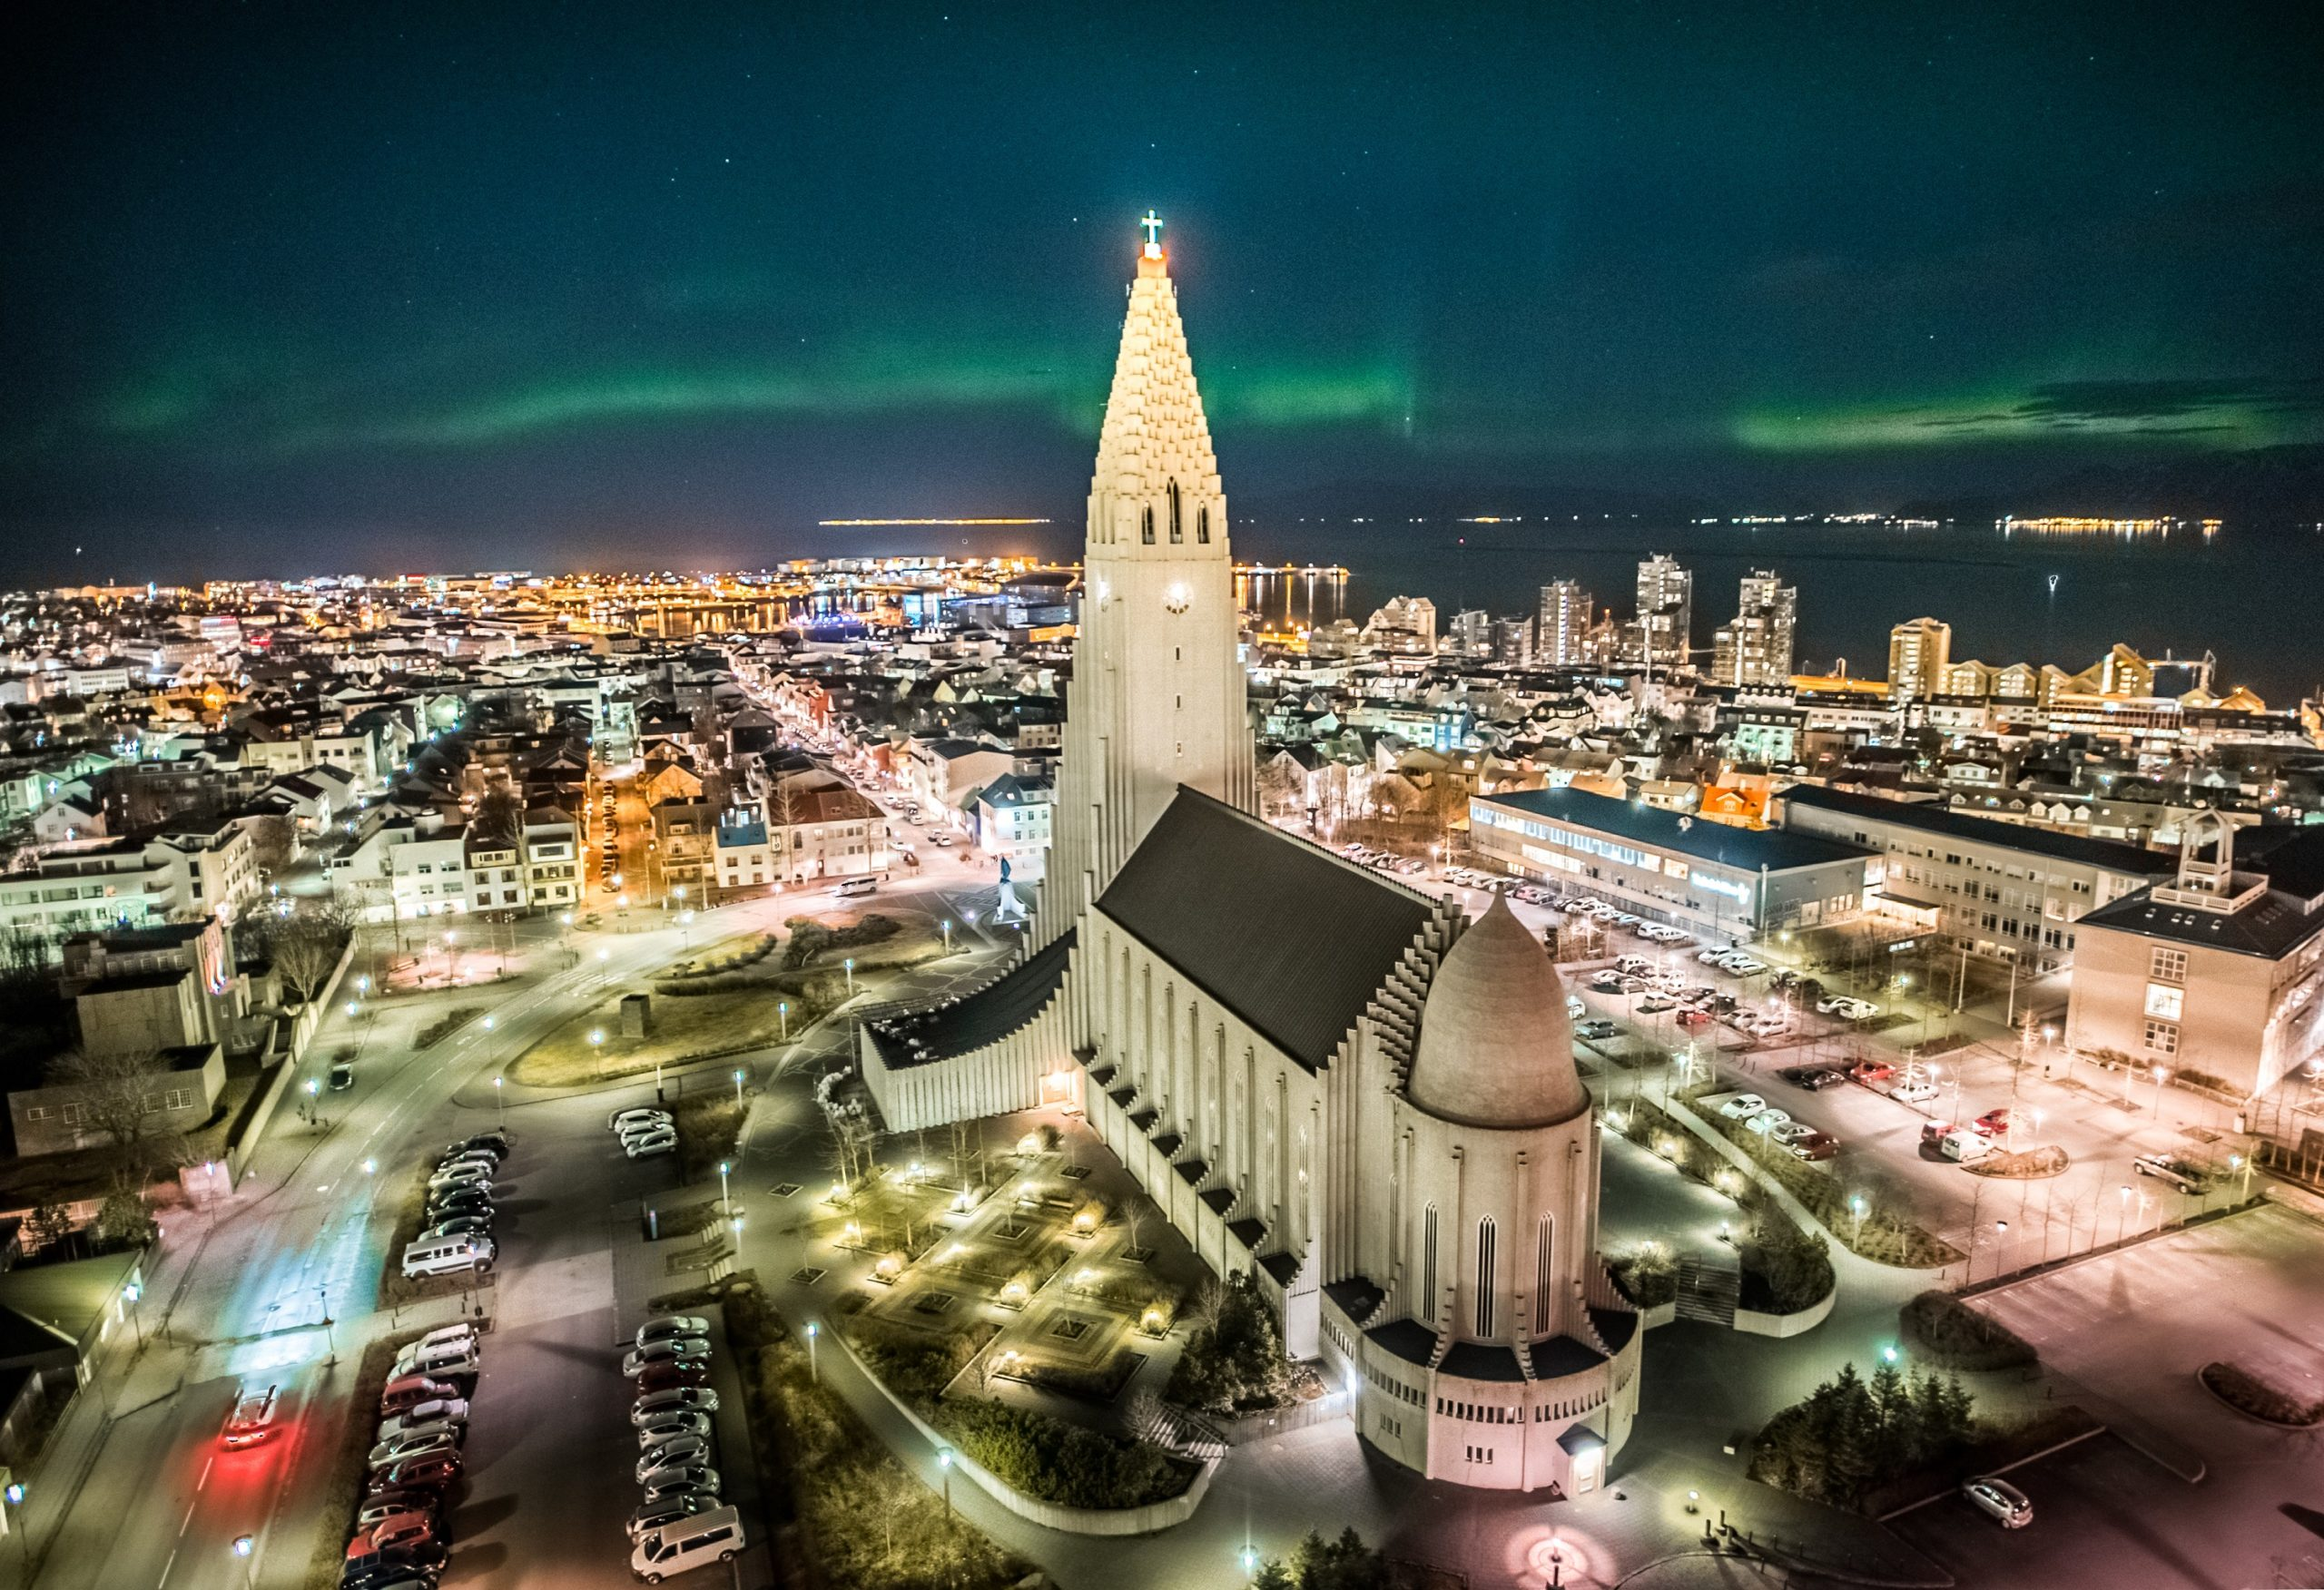 Reykjavík will host two of the biggest esports events of the year